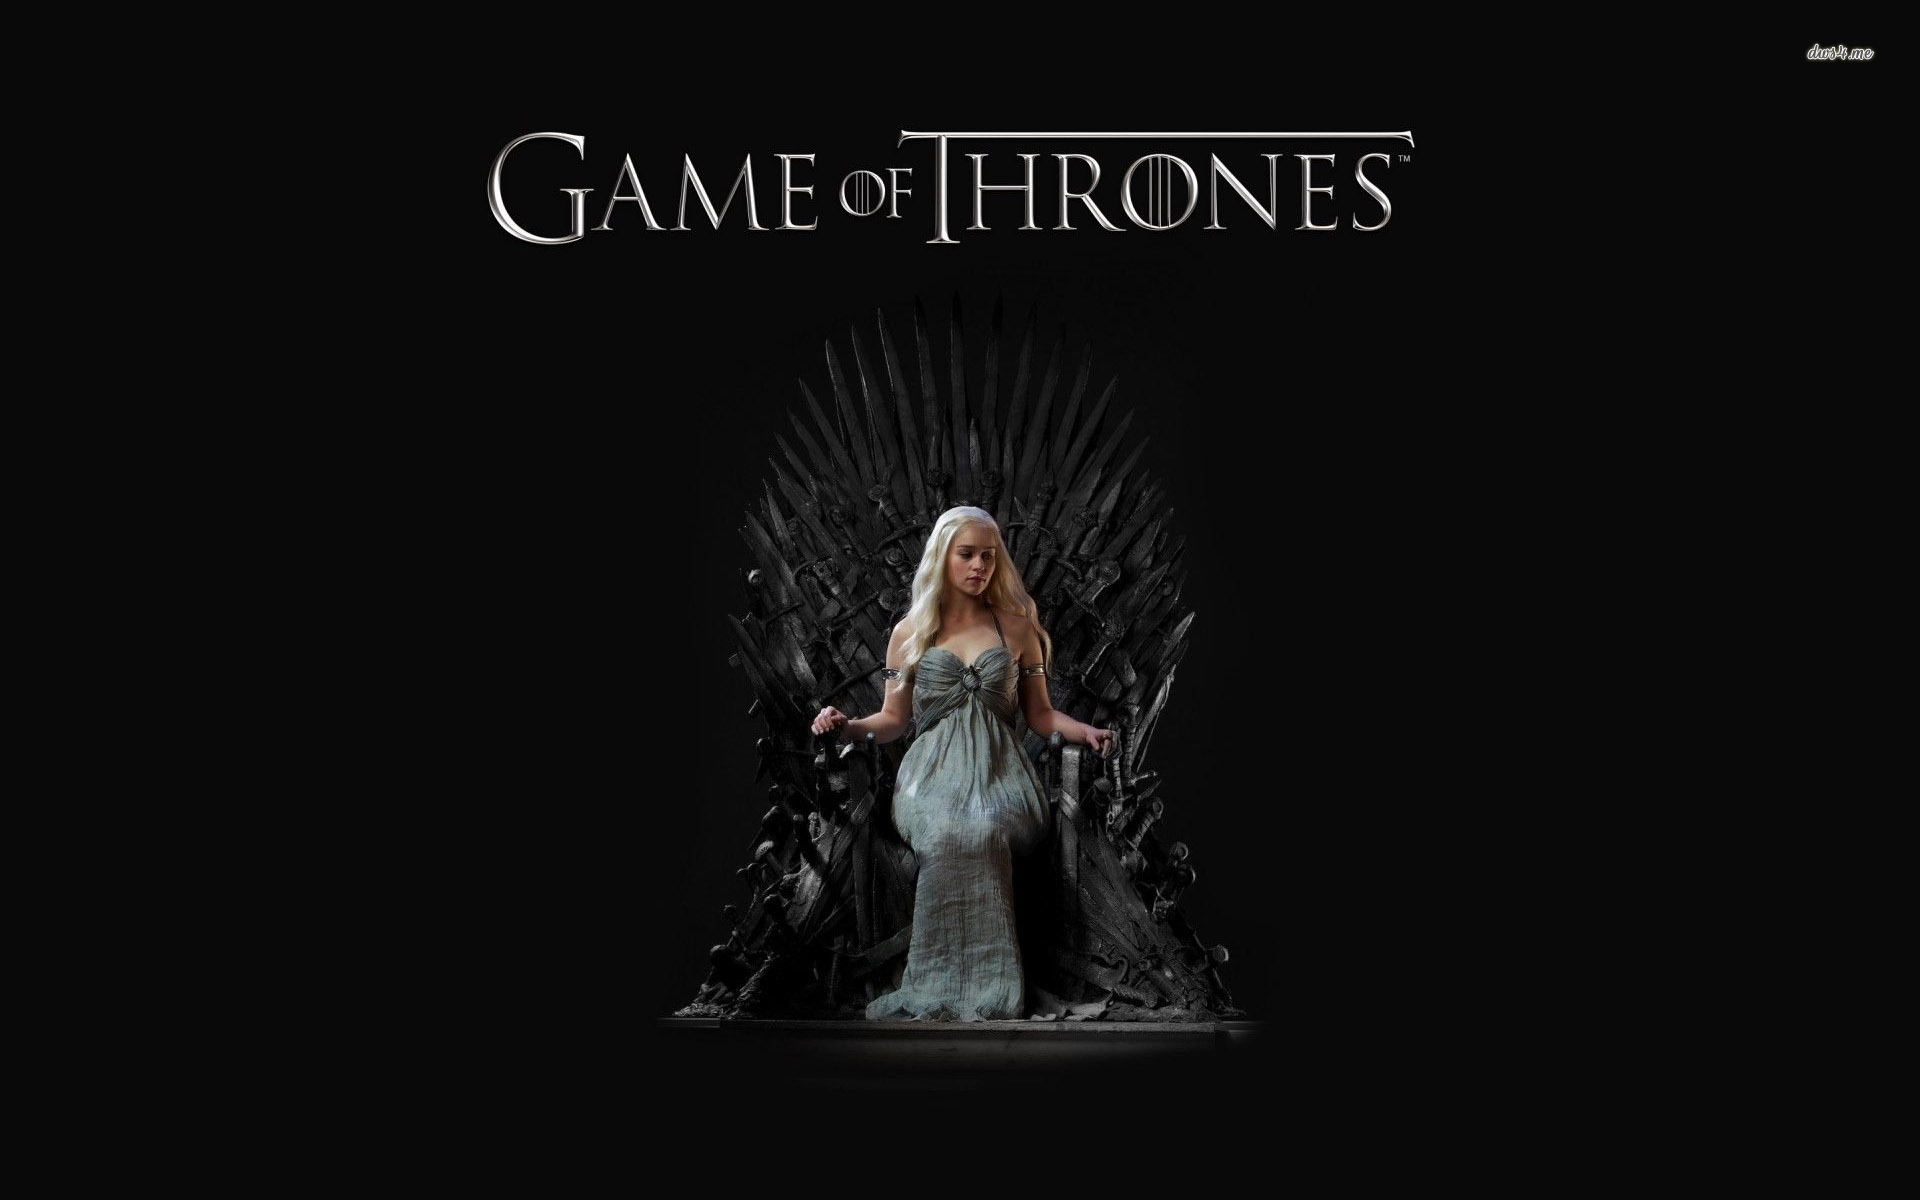 High Quality HD Game of Thrones wallpapers 95478 is HD wallpaper 1920x1200